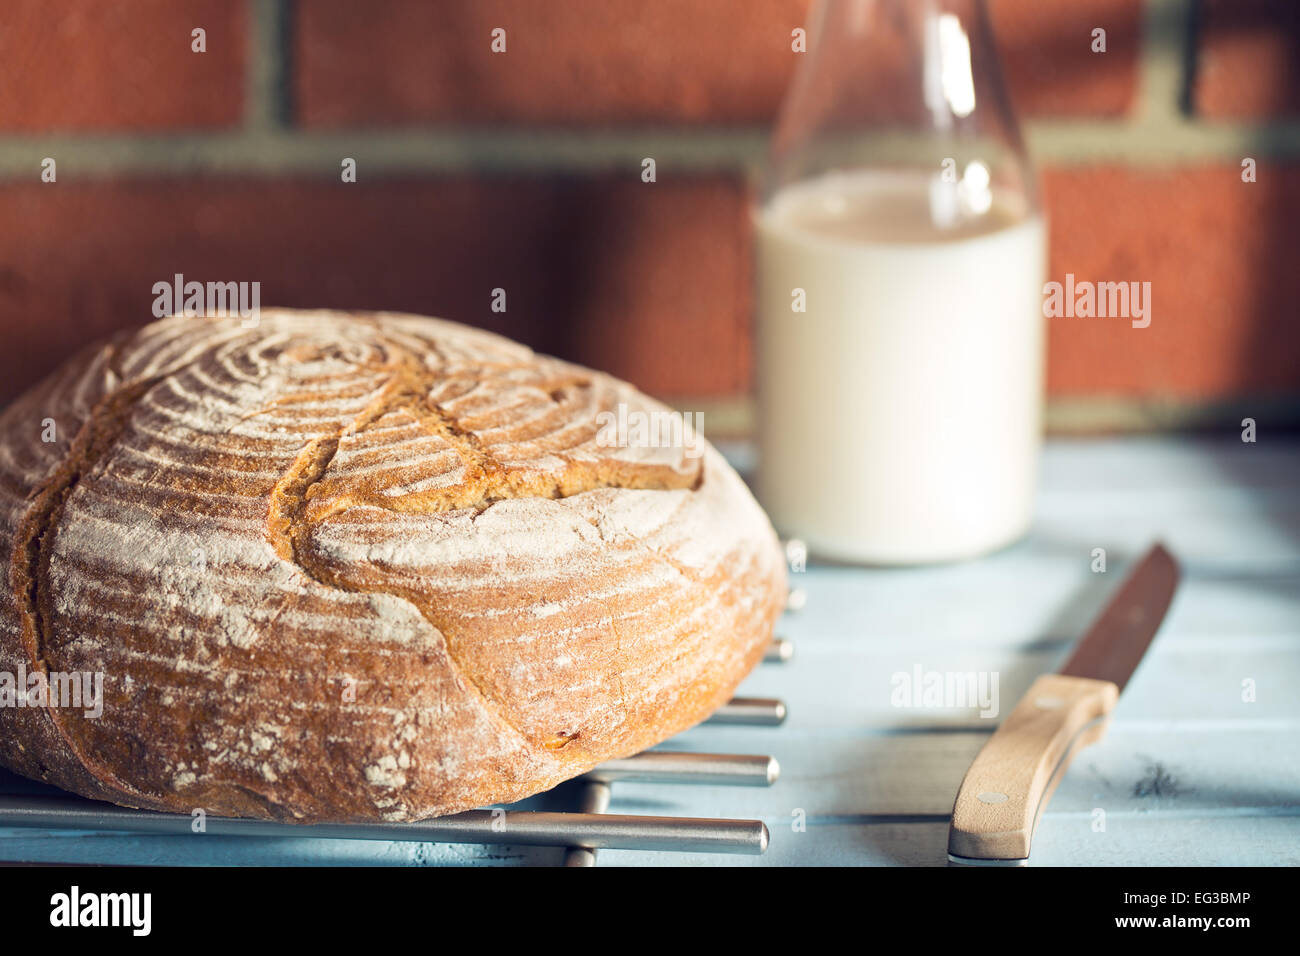 round bread on wooden table - Stock Image